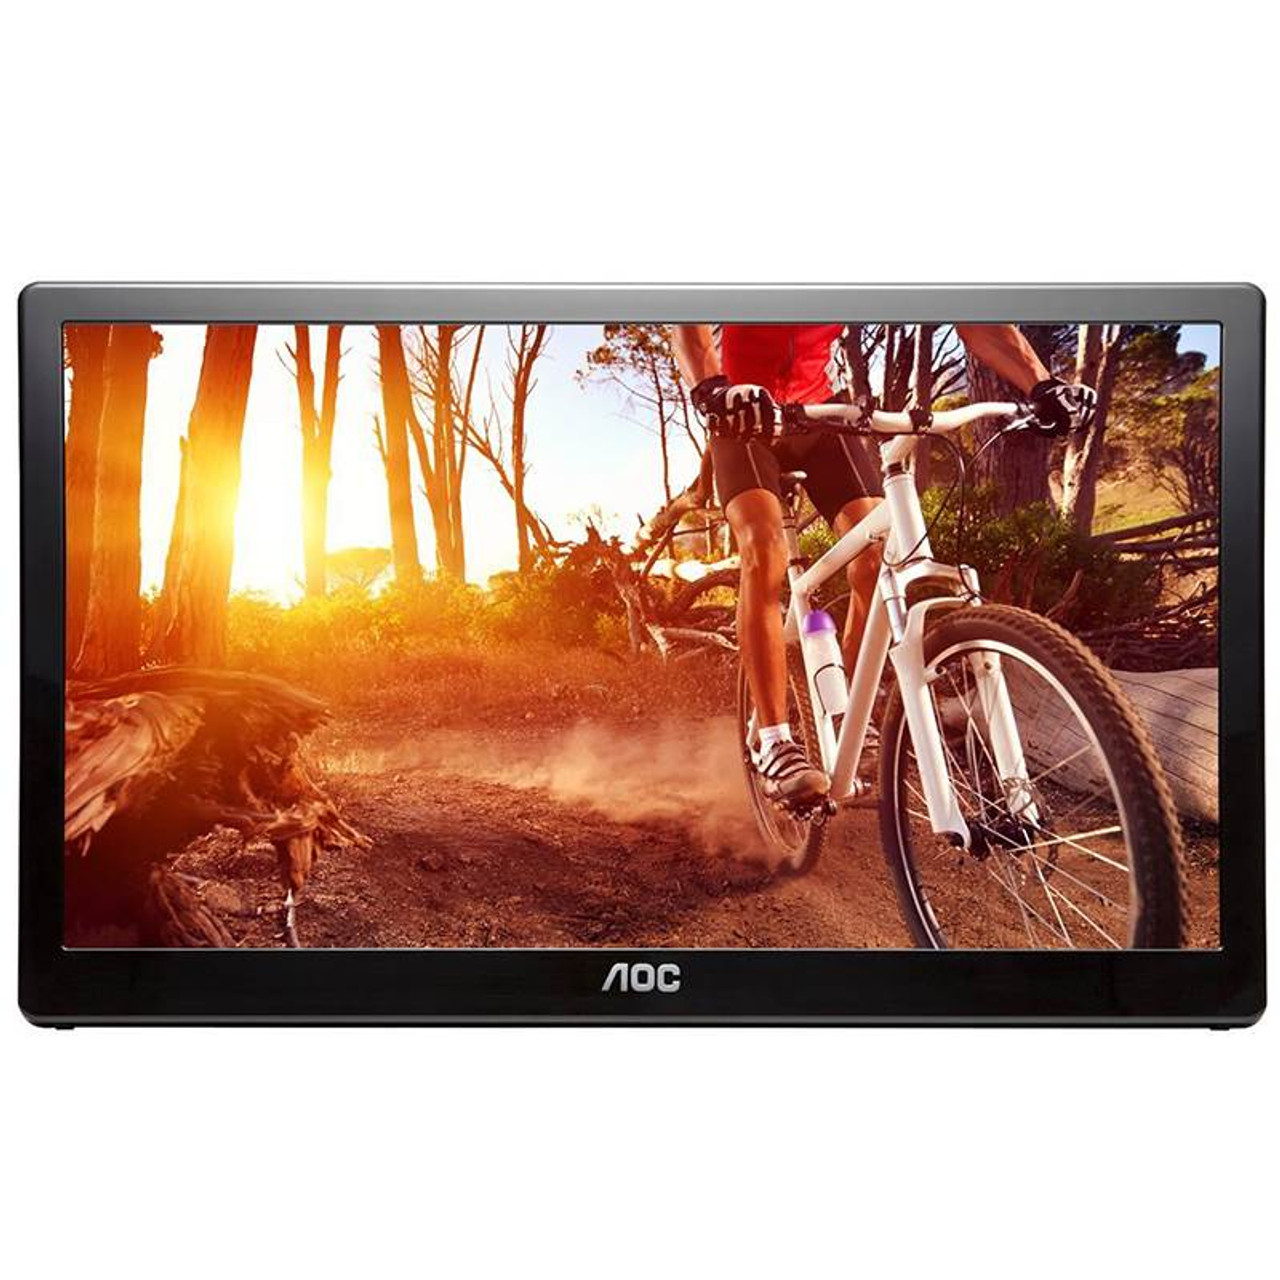 Product image for AOC E1659FWU 15.6in 1366 x 768 8ms USB3 Powered Portable LED Monitor | CX Computer Superstore